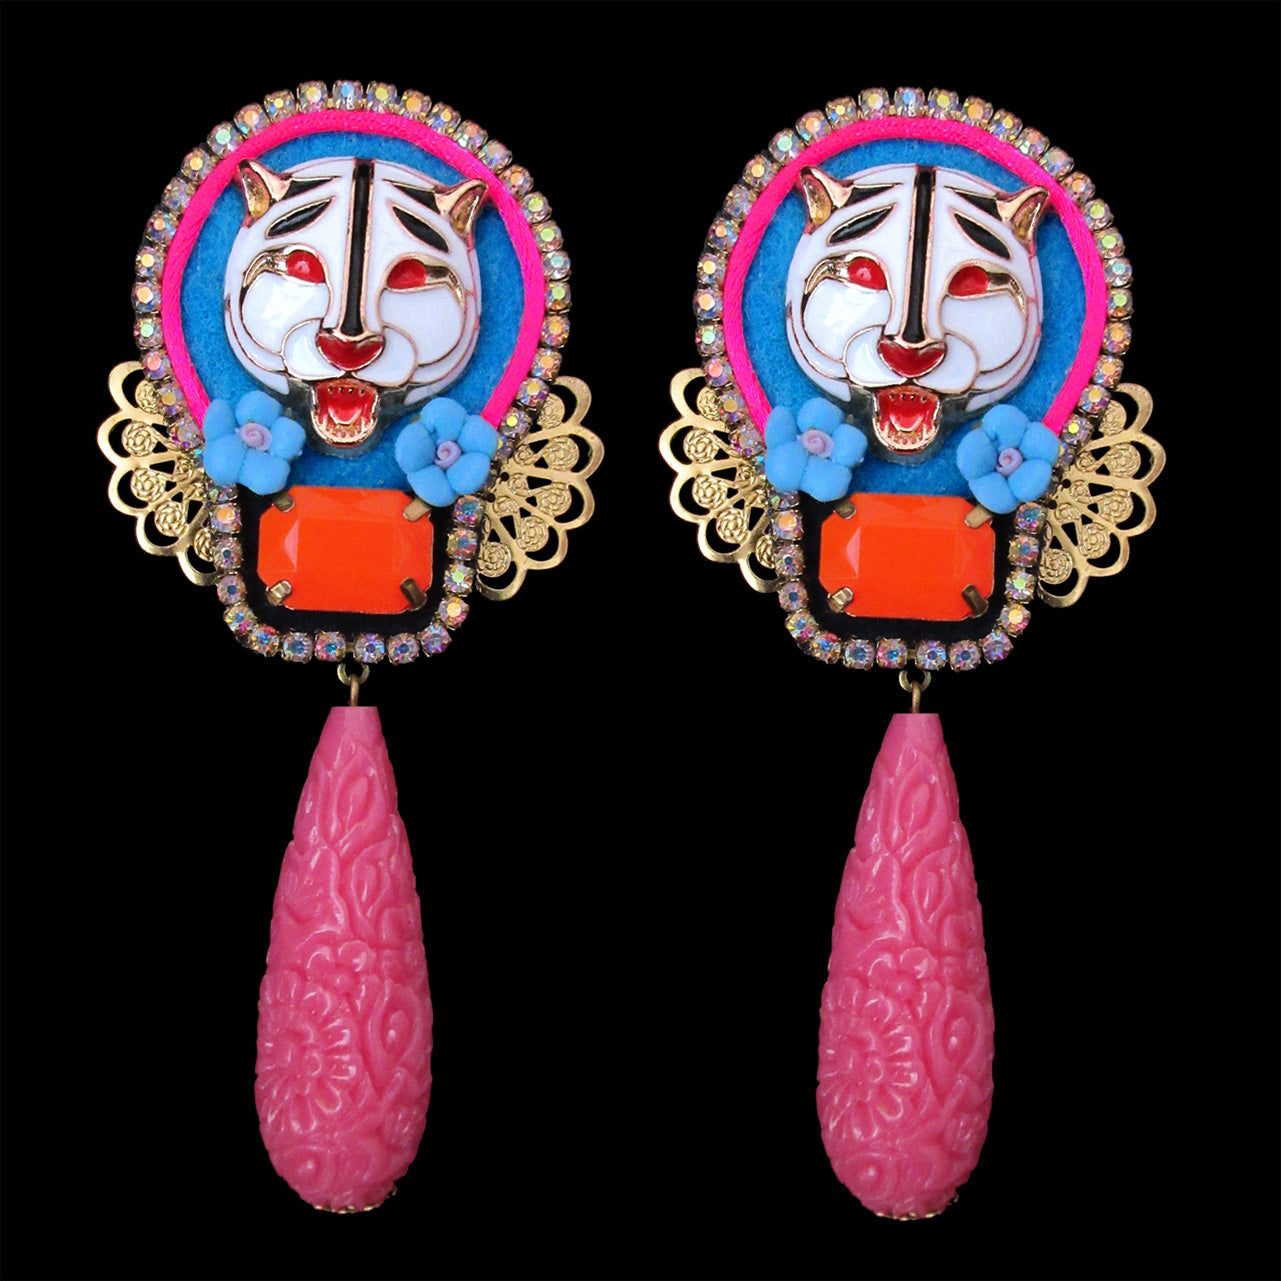 Mouchkine Jewelry white tiger painted head earrings, with pink pendant and blue ceramic flowers. Chic handmade in France.